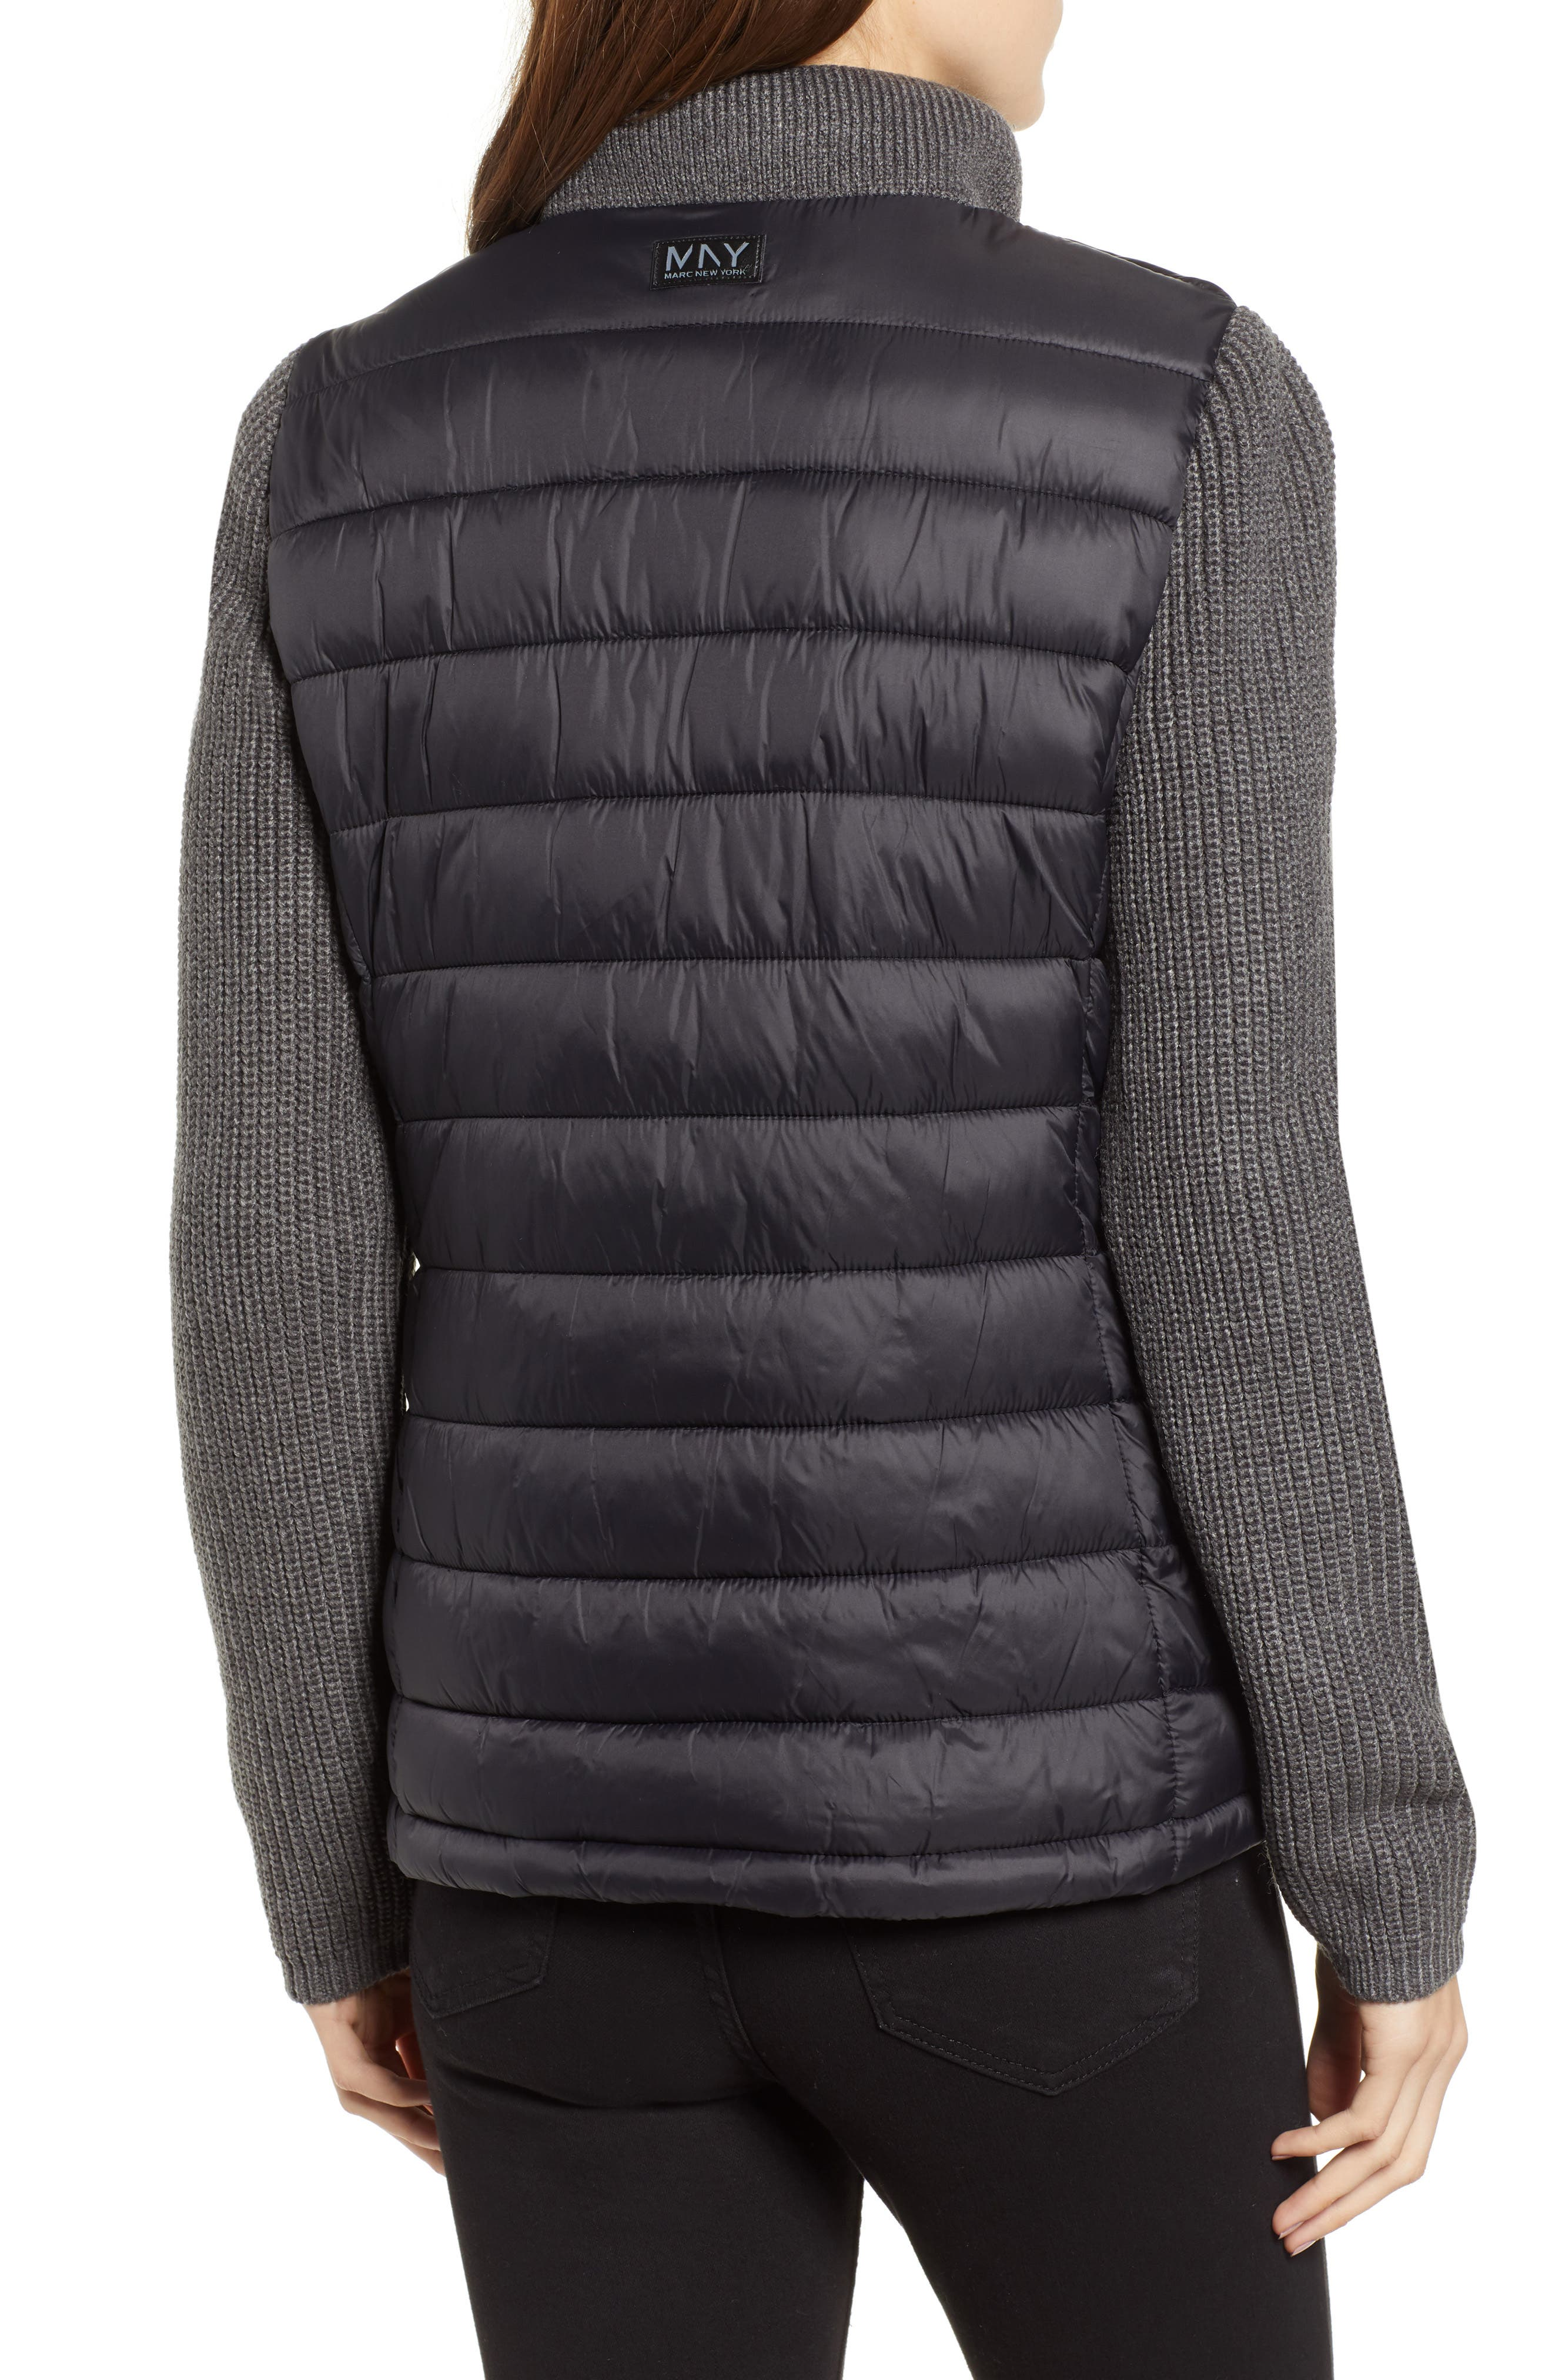 MARC NEW YORK, Mark New York Packable Knit Trim Puffer Jacket, Alternate thumbnail 2, color, BLACK/ GREY